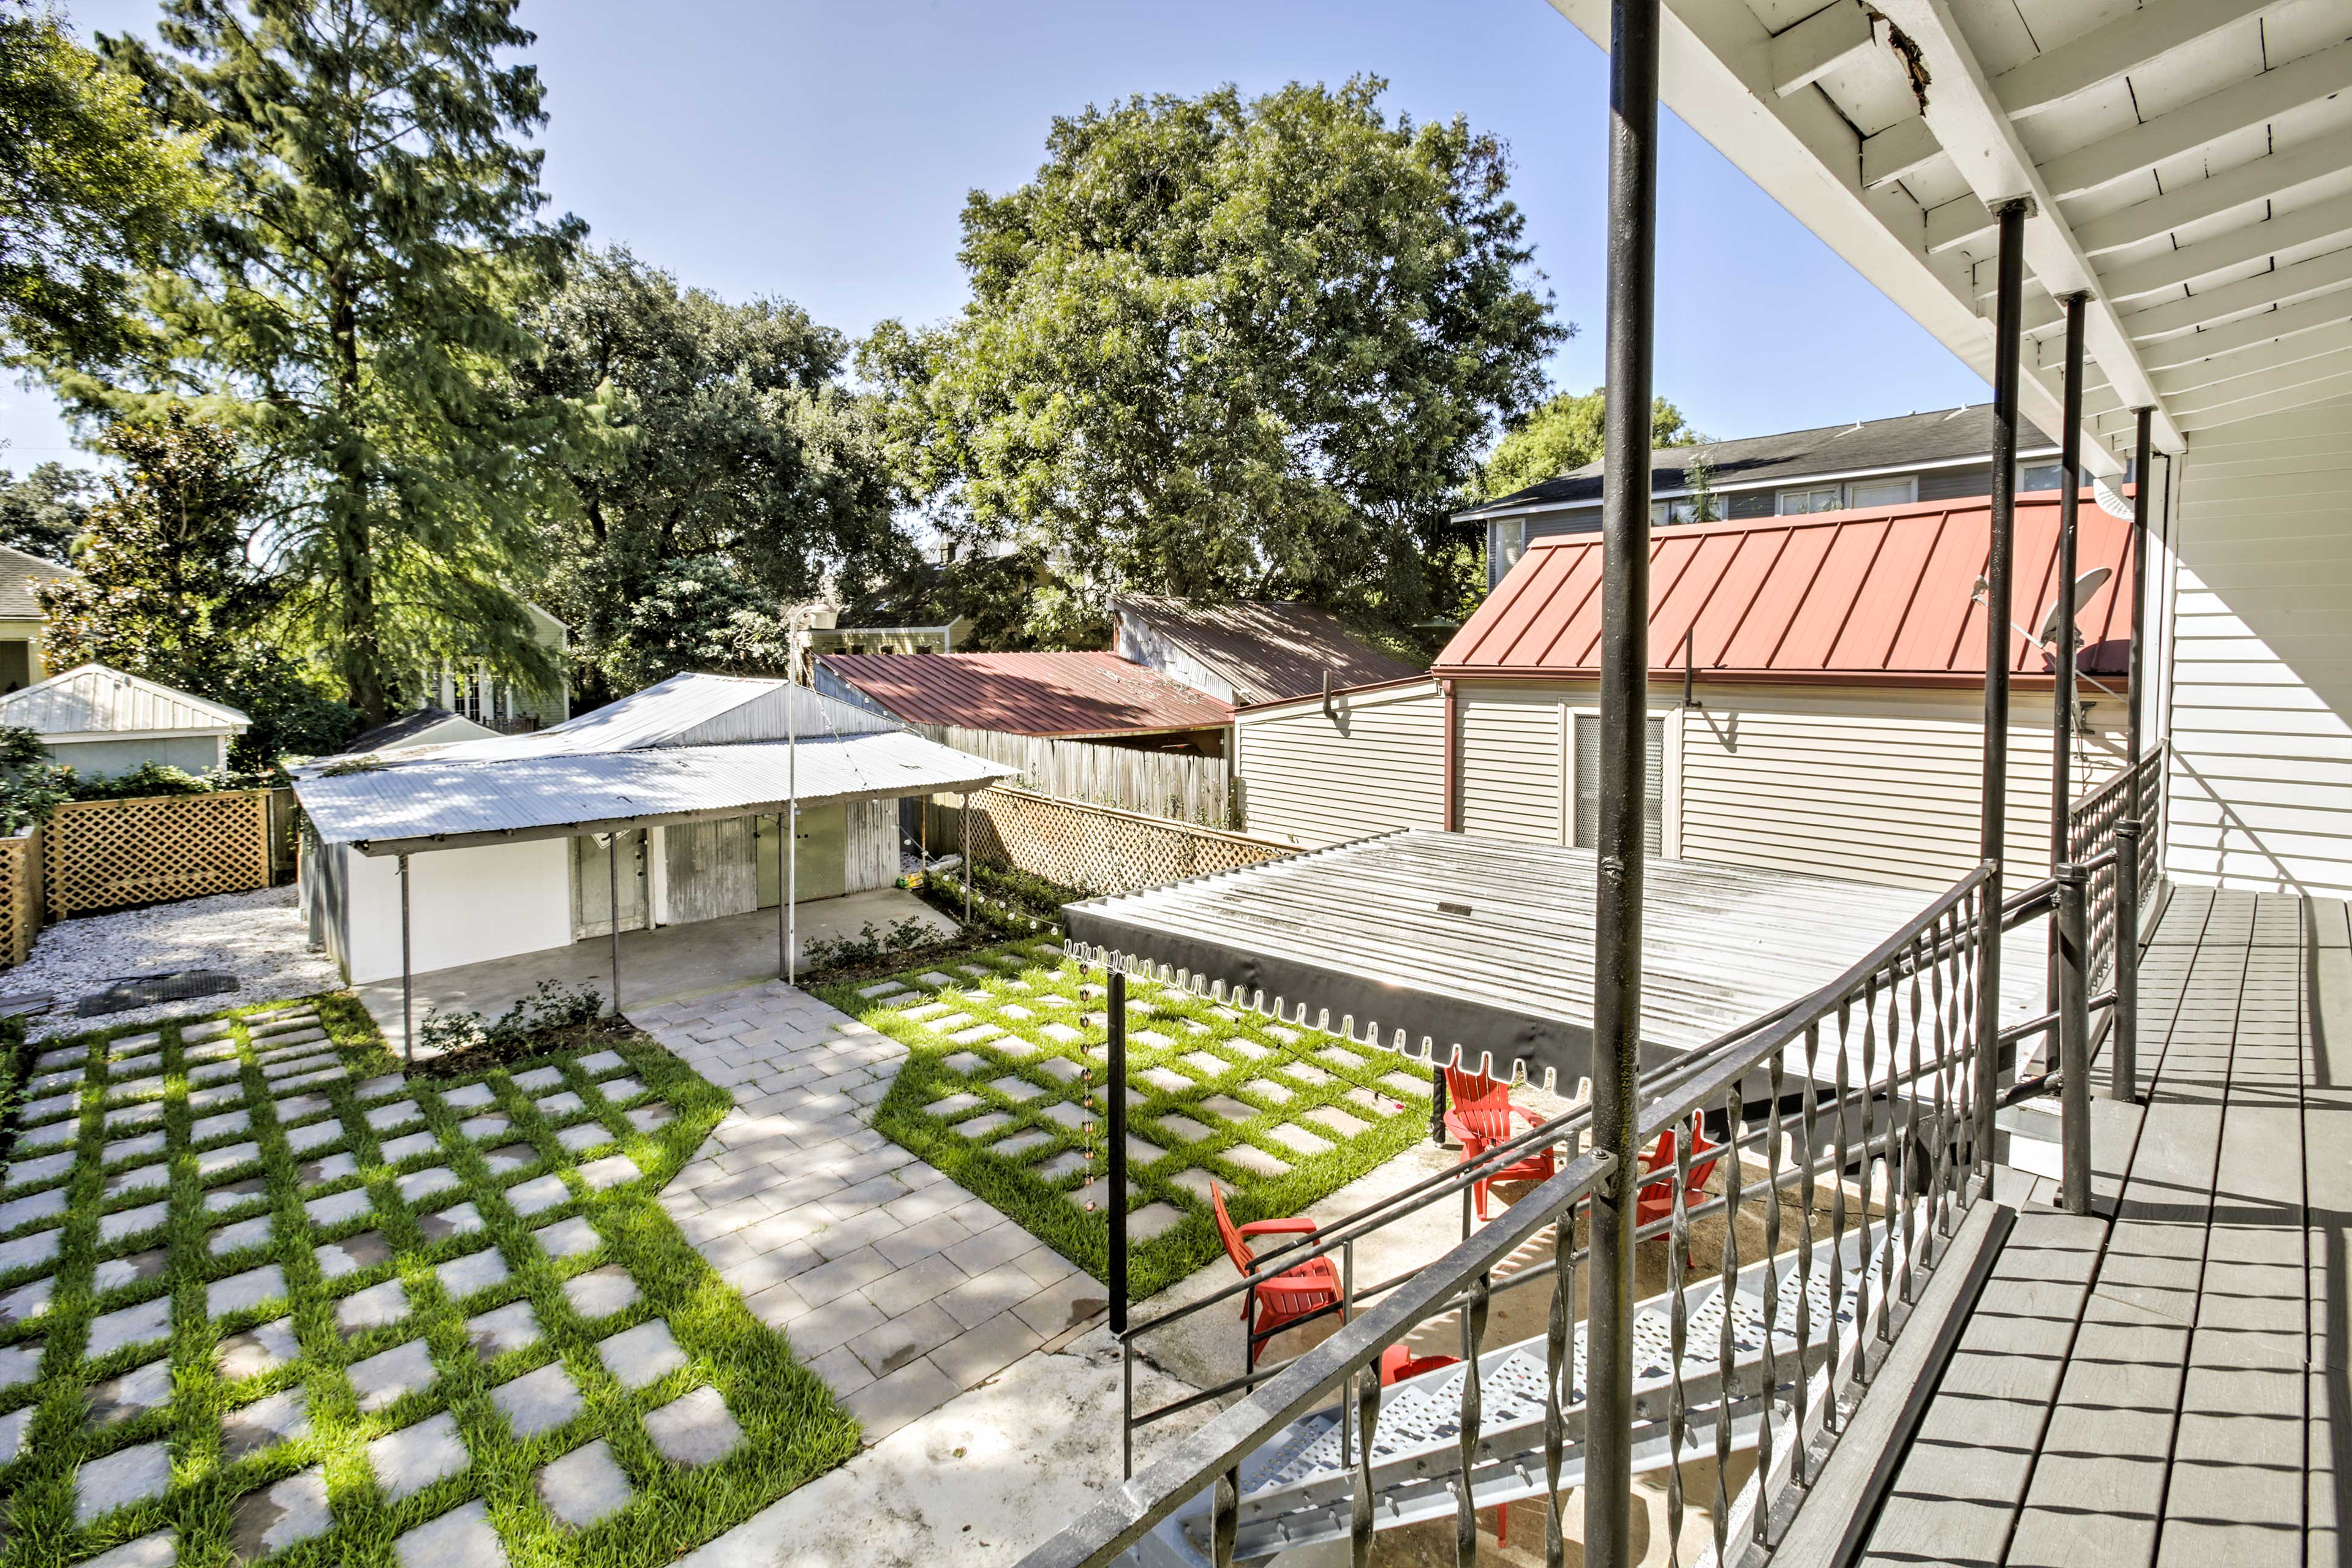 Head down to the backyard to find a newly landscaped and spacious outdoor area.